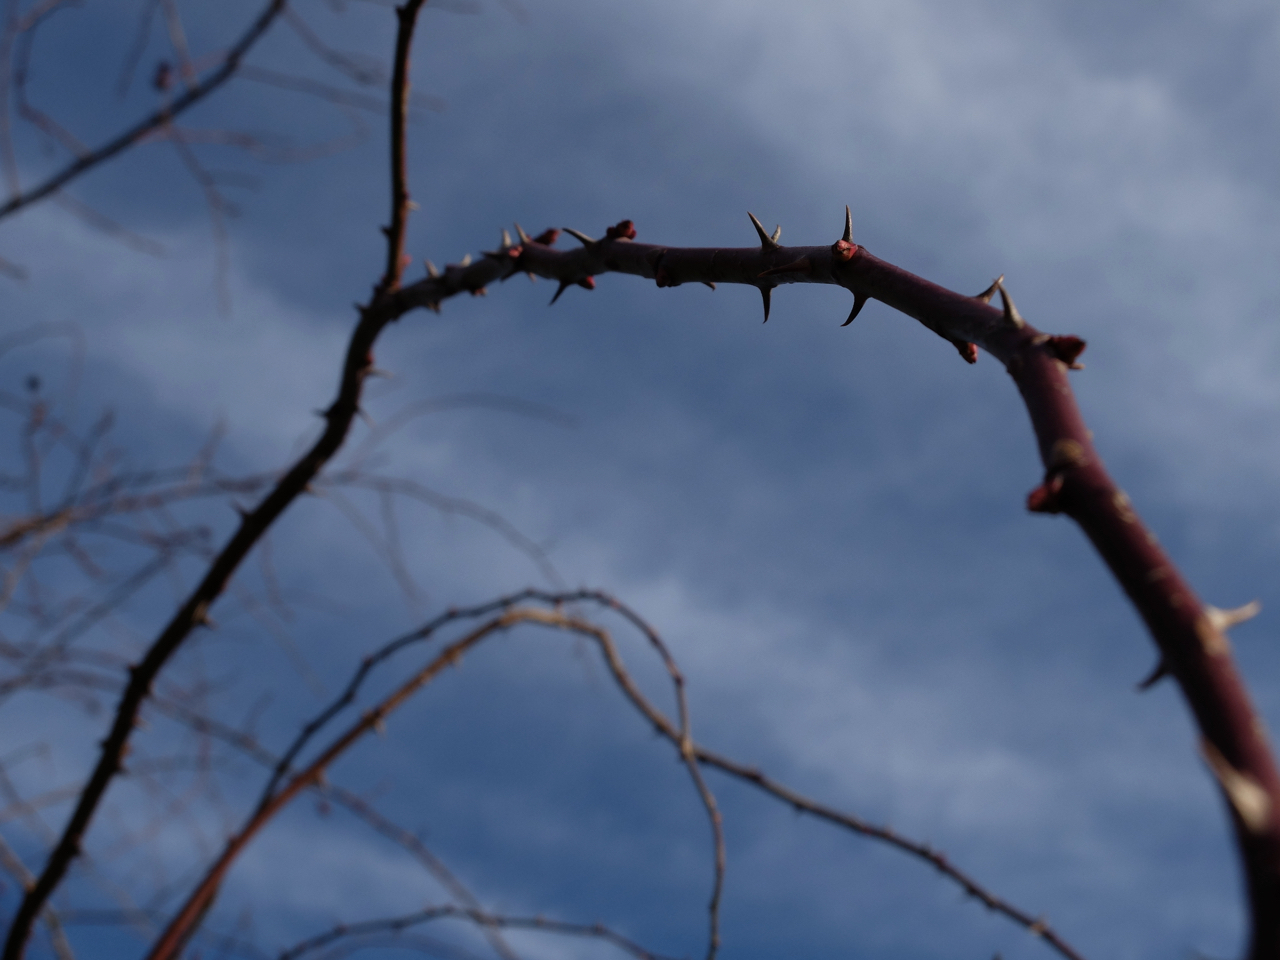 Thorns on a branch